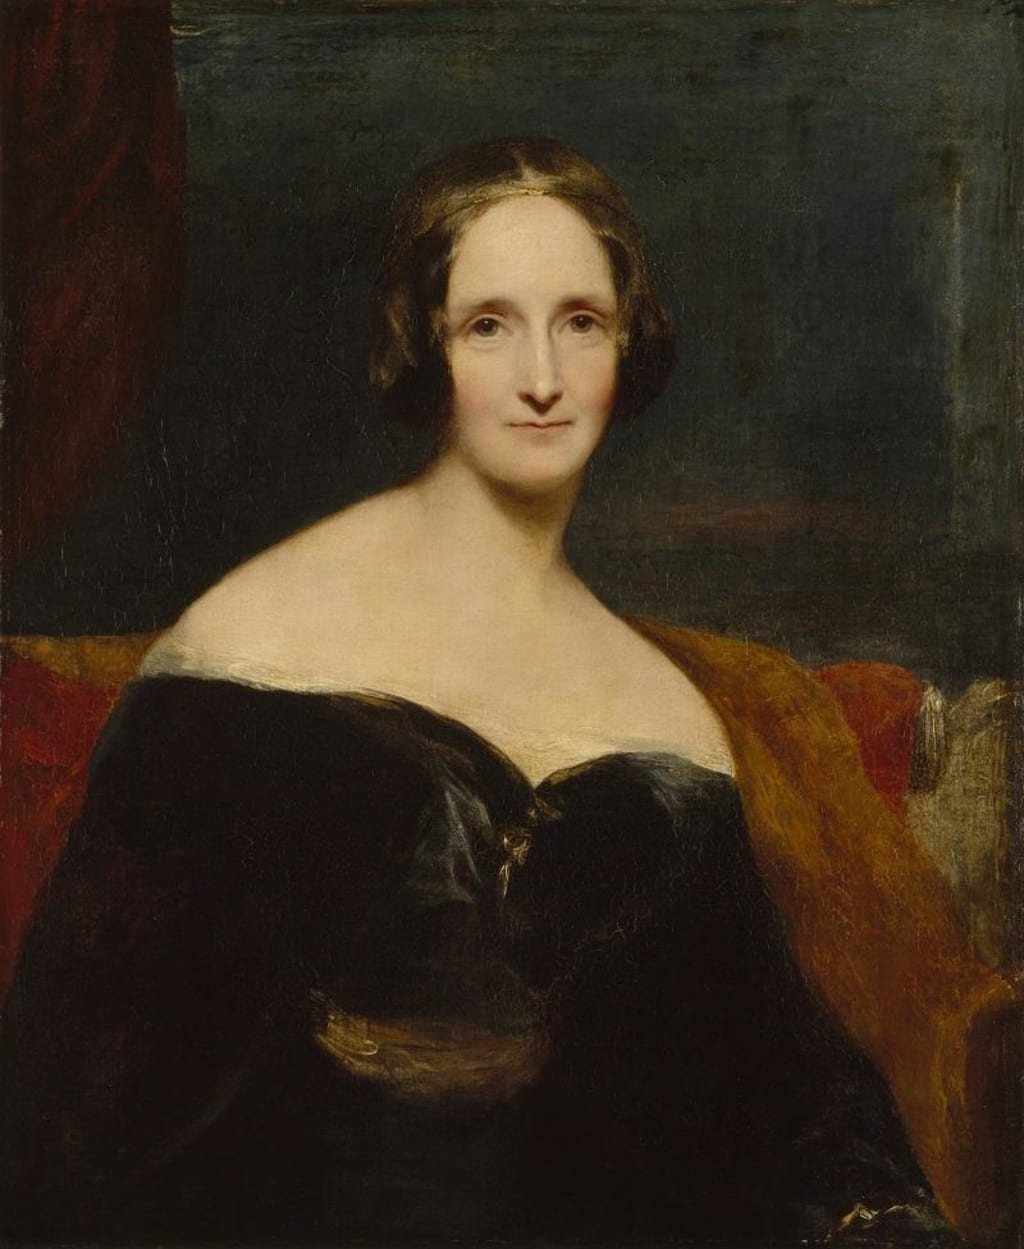 'Frankenstein' by Mary Shelley (Pt. 3)